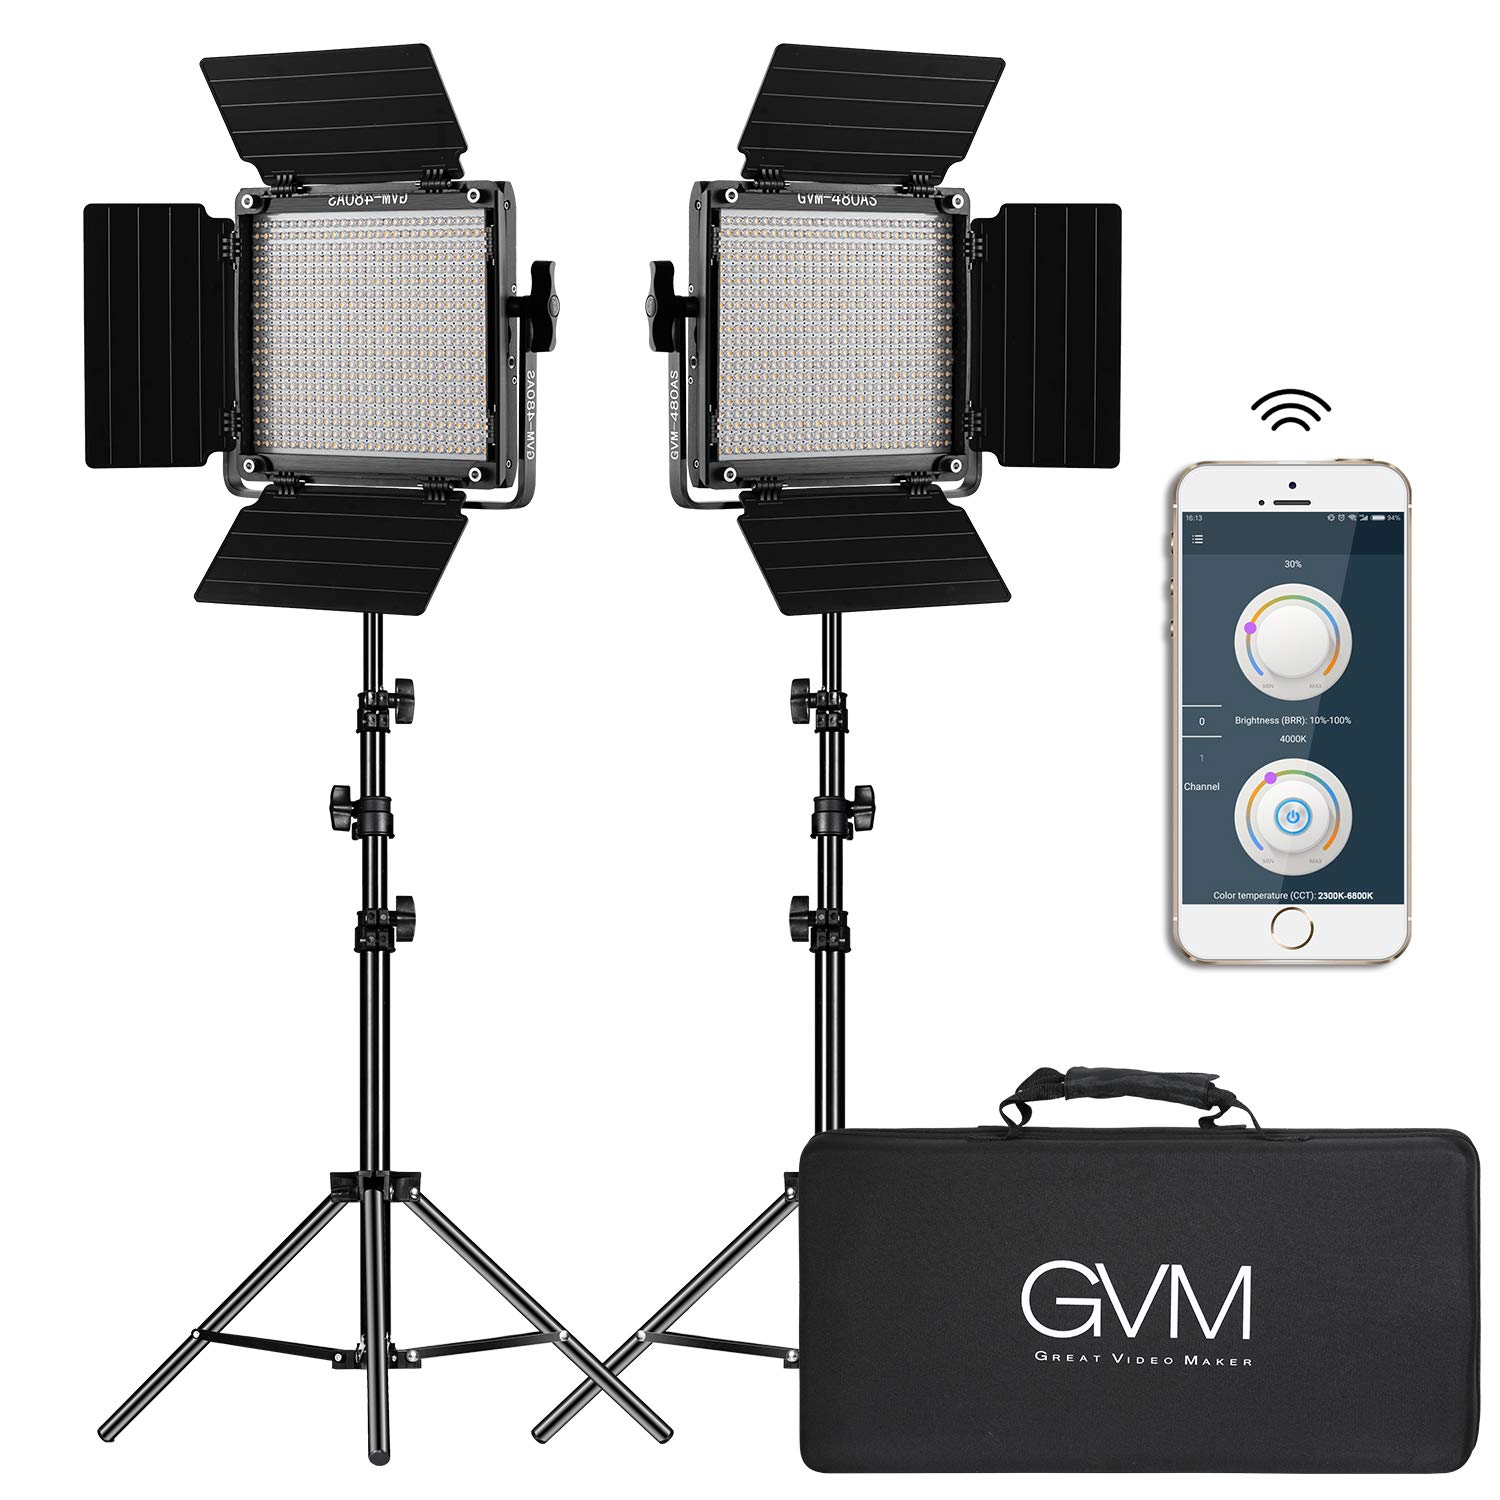 GVM 2 Pack LED Video Lighting Kits with APP Control, Bi-Color Variable 2300K~6800K with Digital Display Brightness of 10~100% for Video Photography, CRI97+ TLCI97 Led Video Light Panel +Barndoor by GVM Great Video Maker